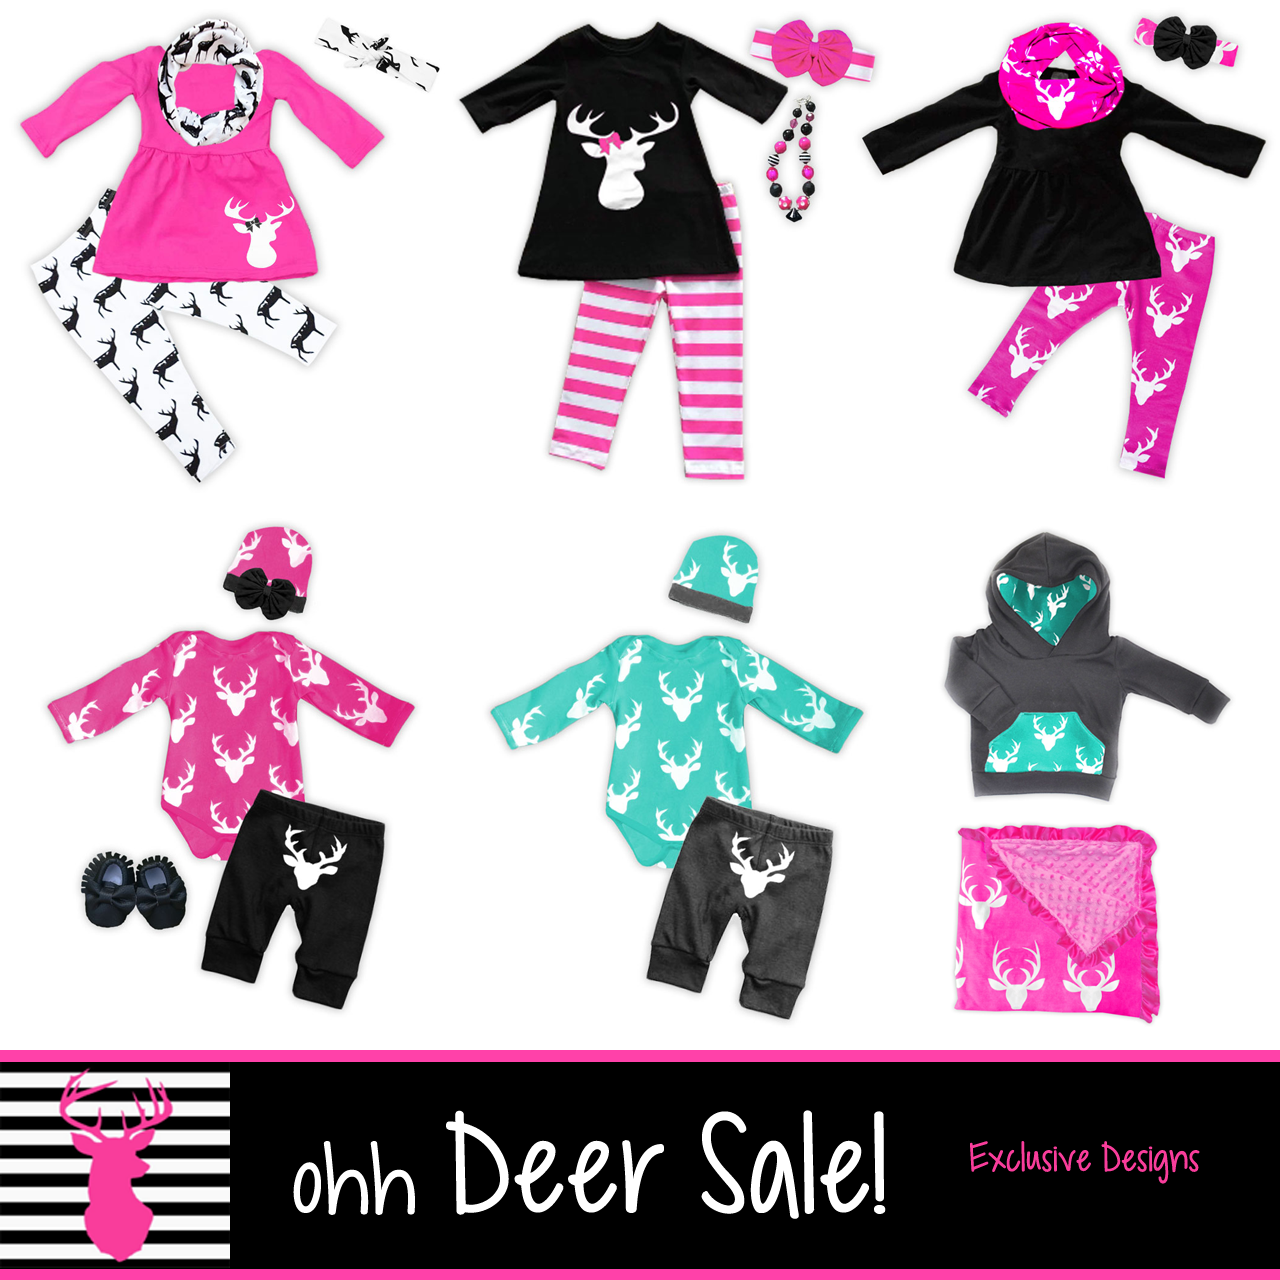 4ebcabdc5886 New  HOT  Oh deer style outfits. Take me home baby style